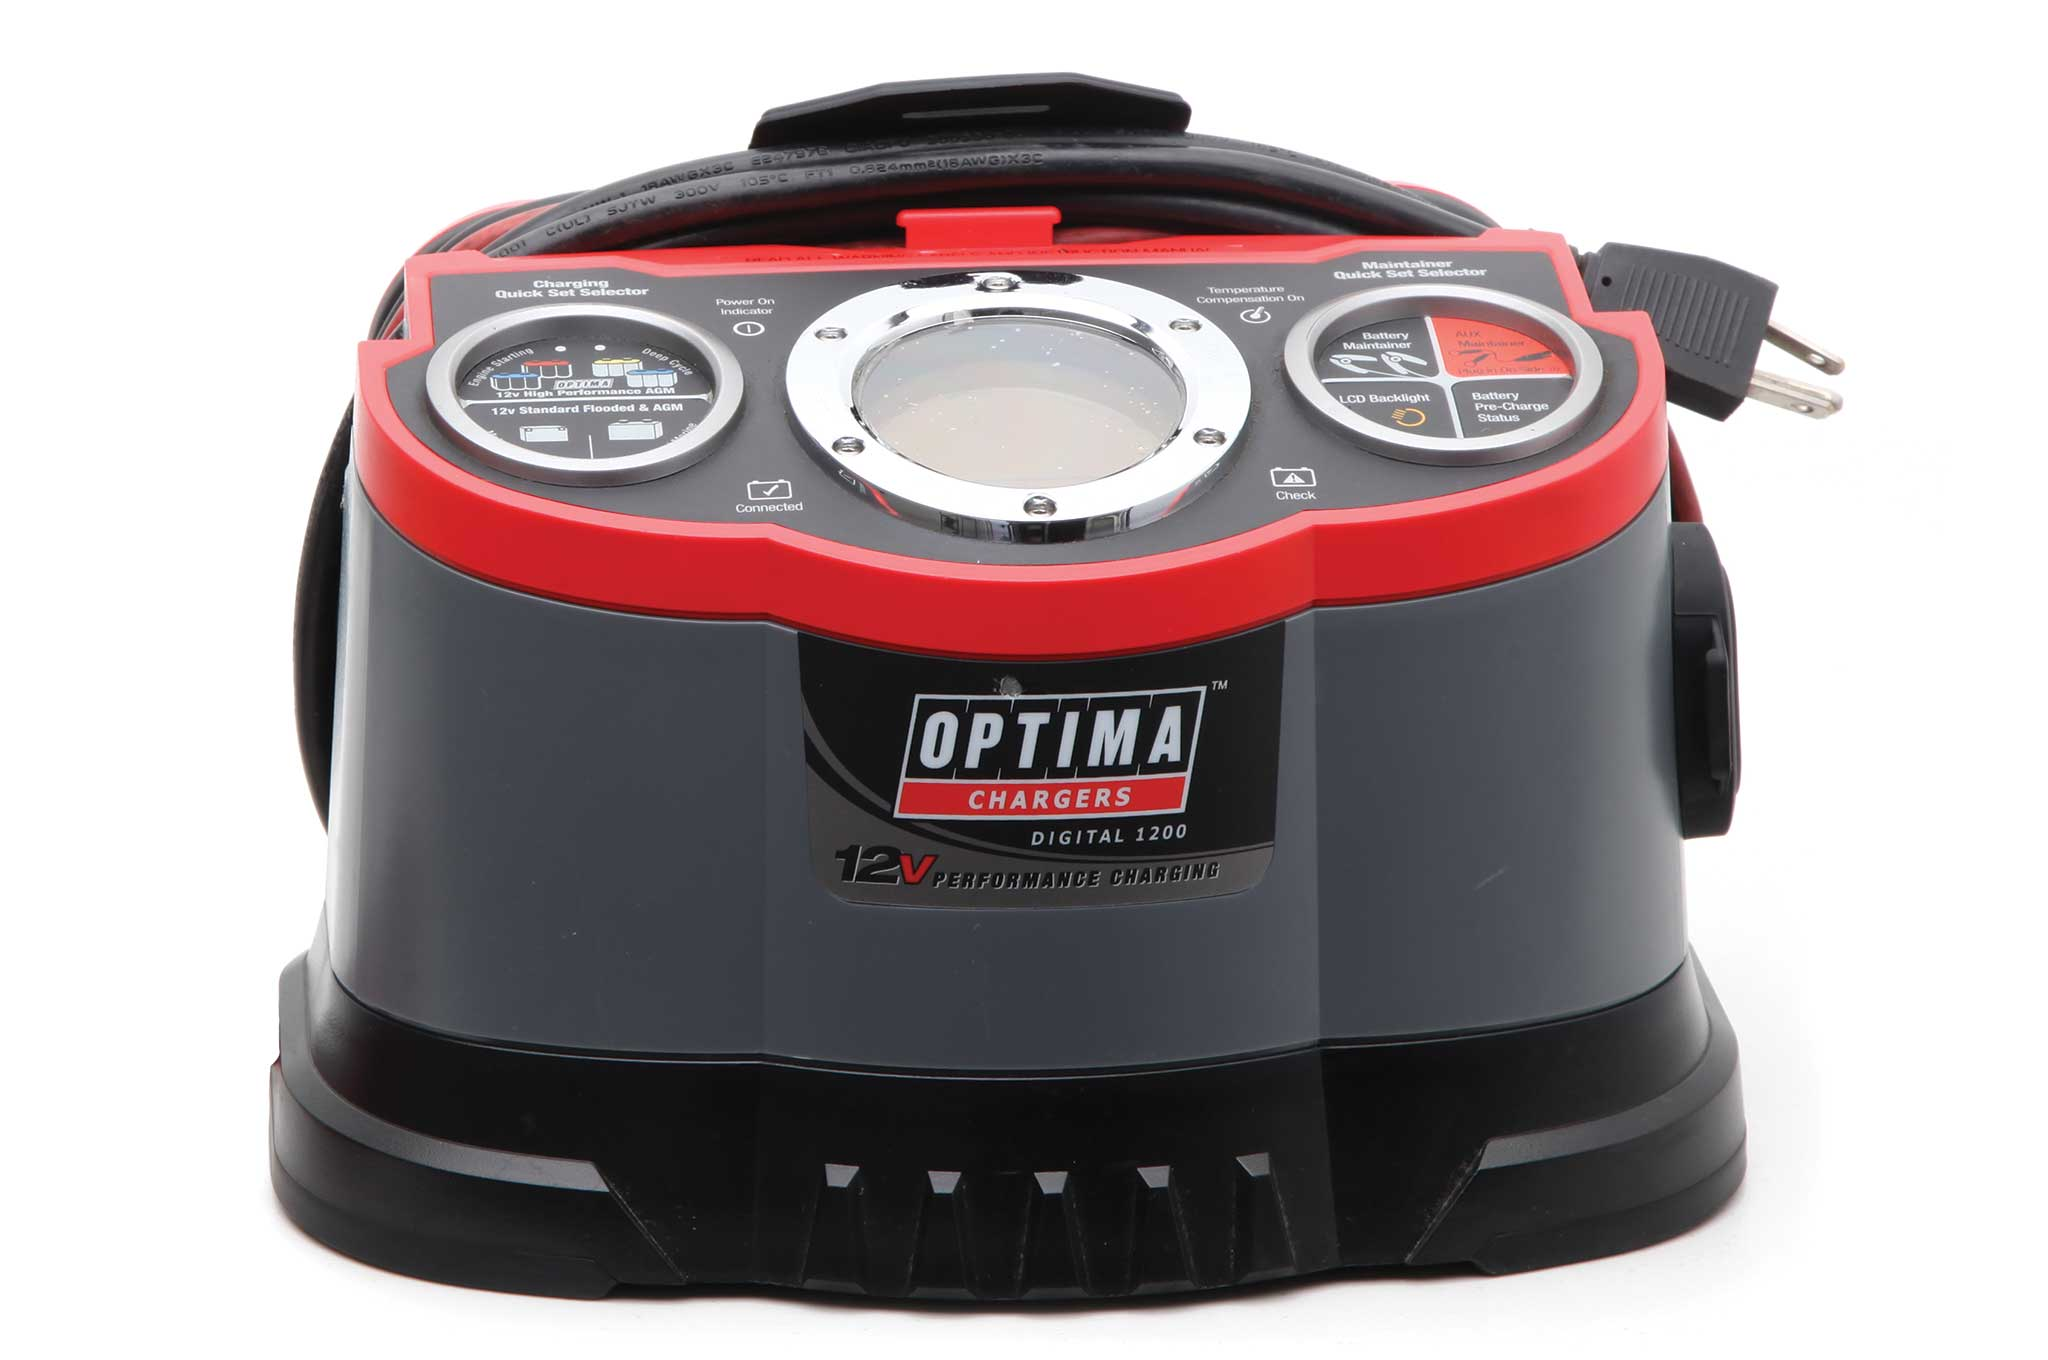 battery reviews optima digital 1200 charger 007